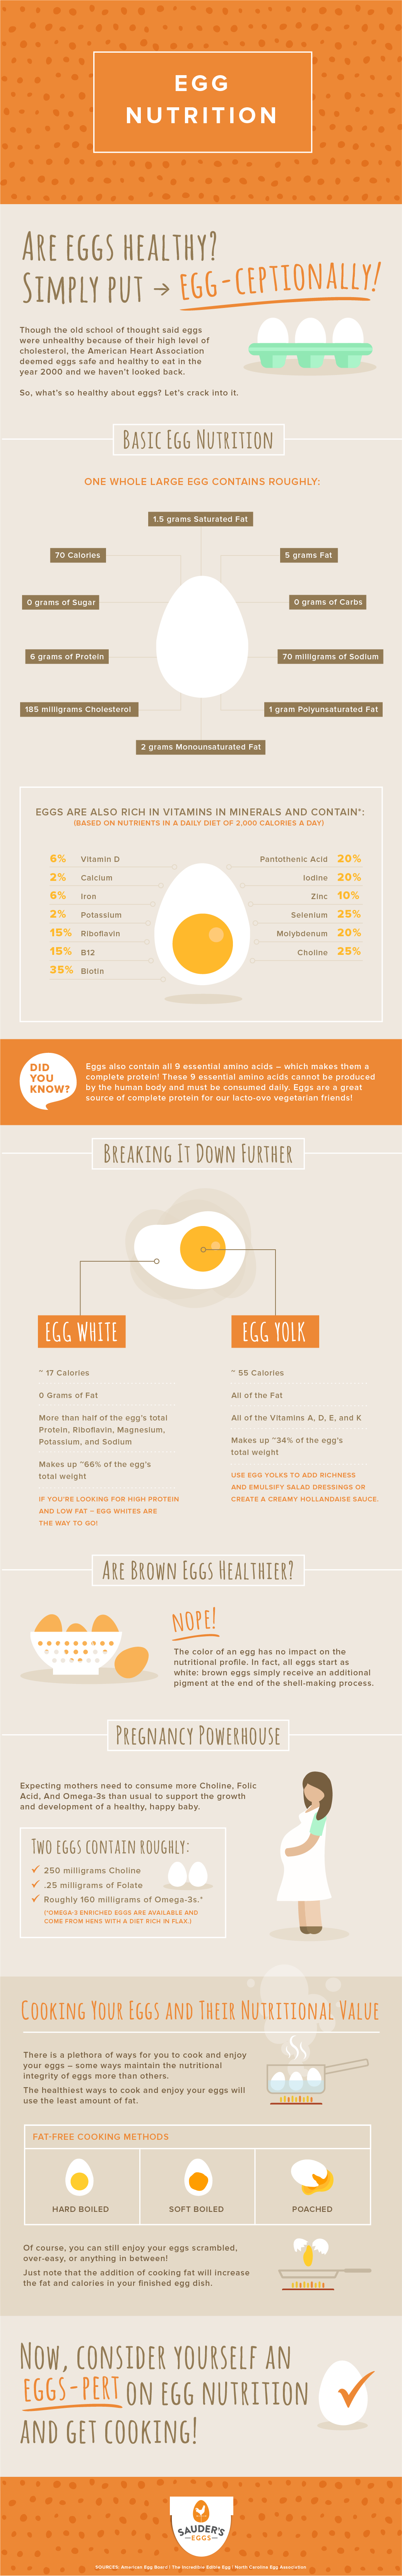 Egg Nutrion Health Benefits Why Eggs Are The Perfect Food